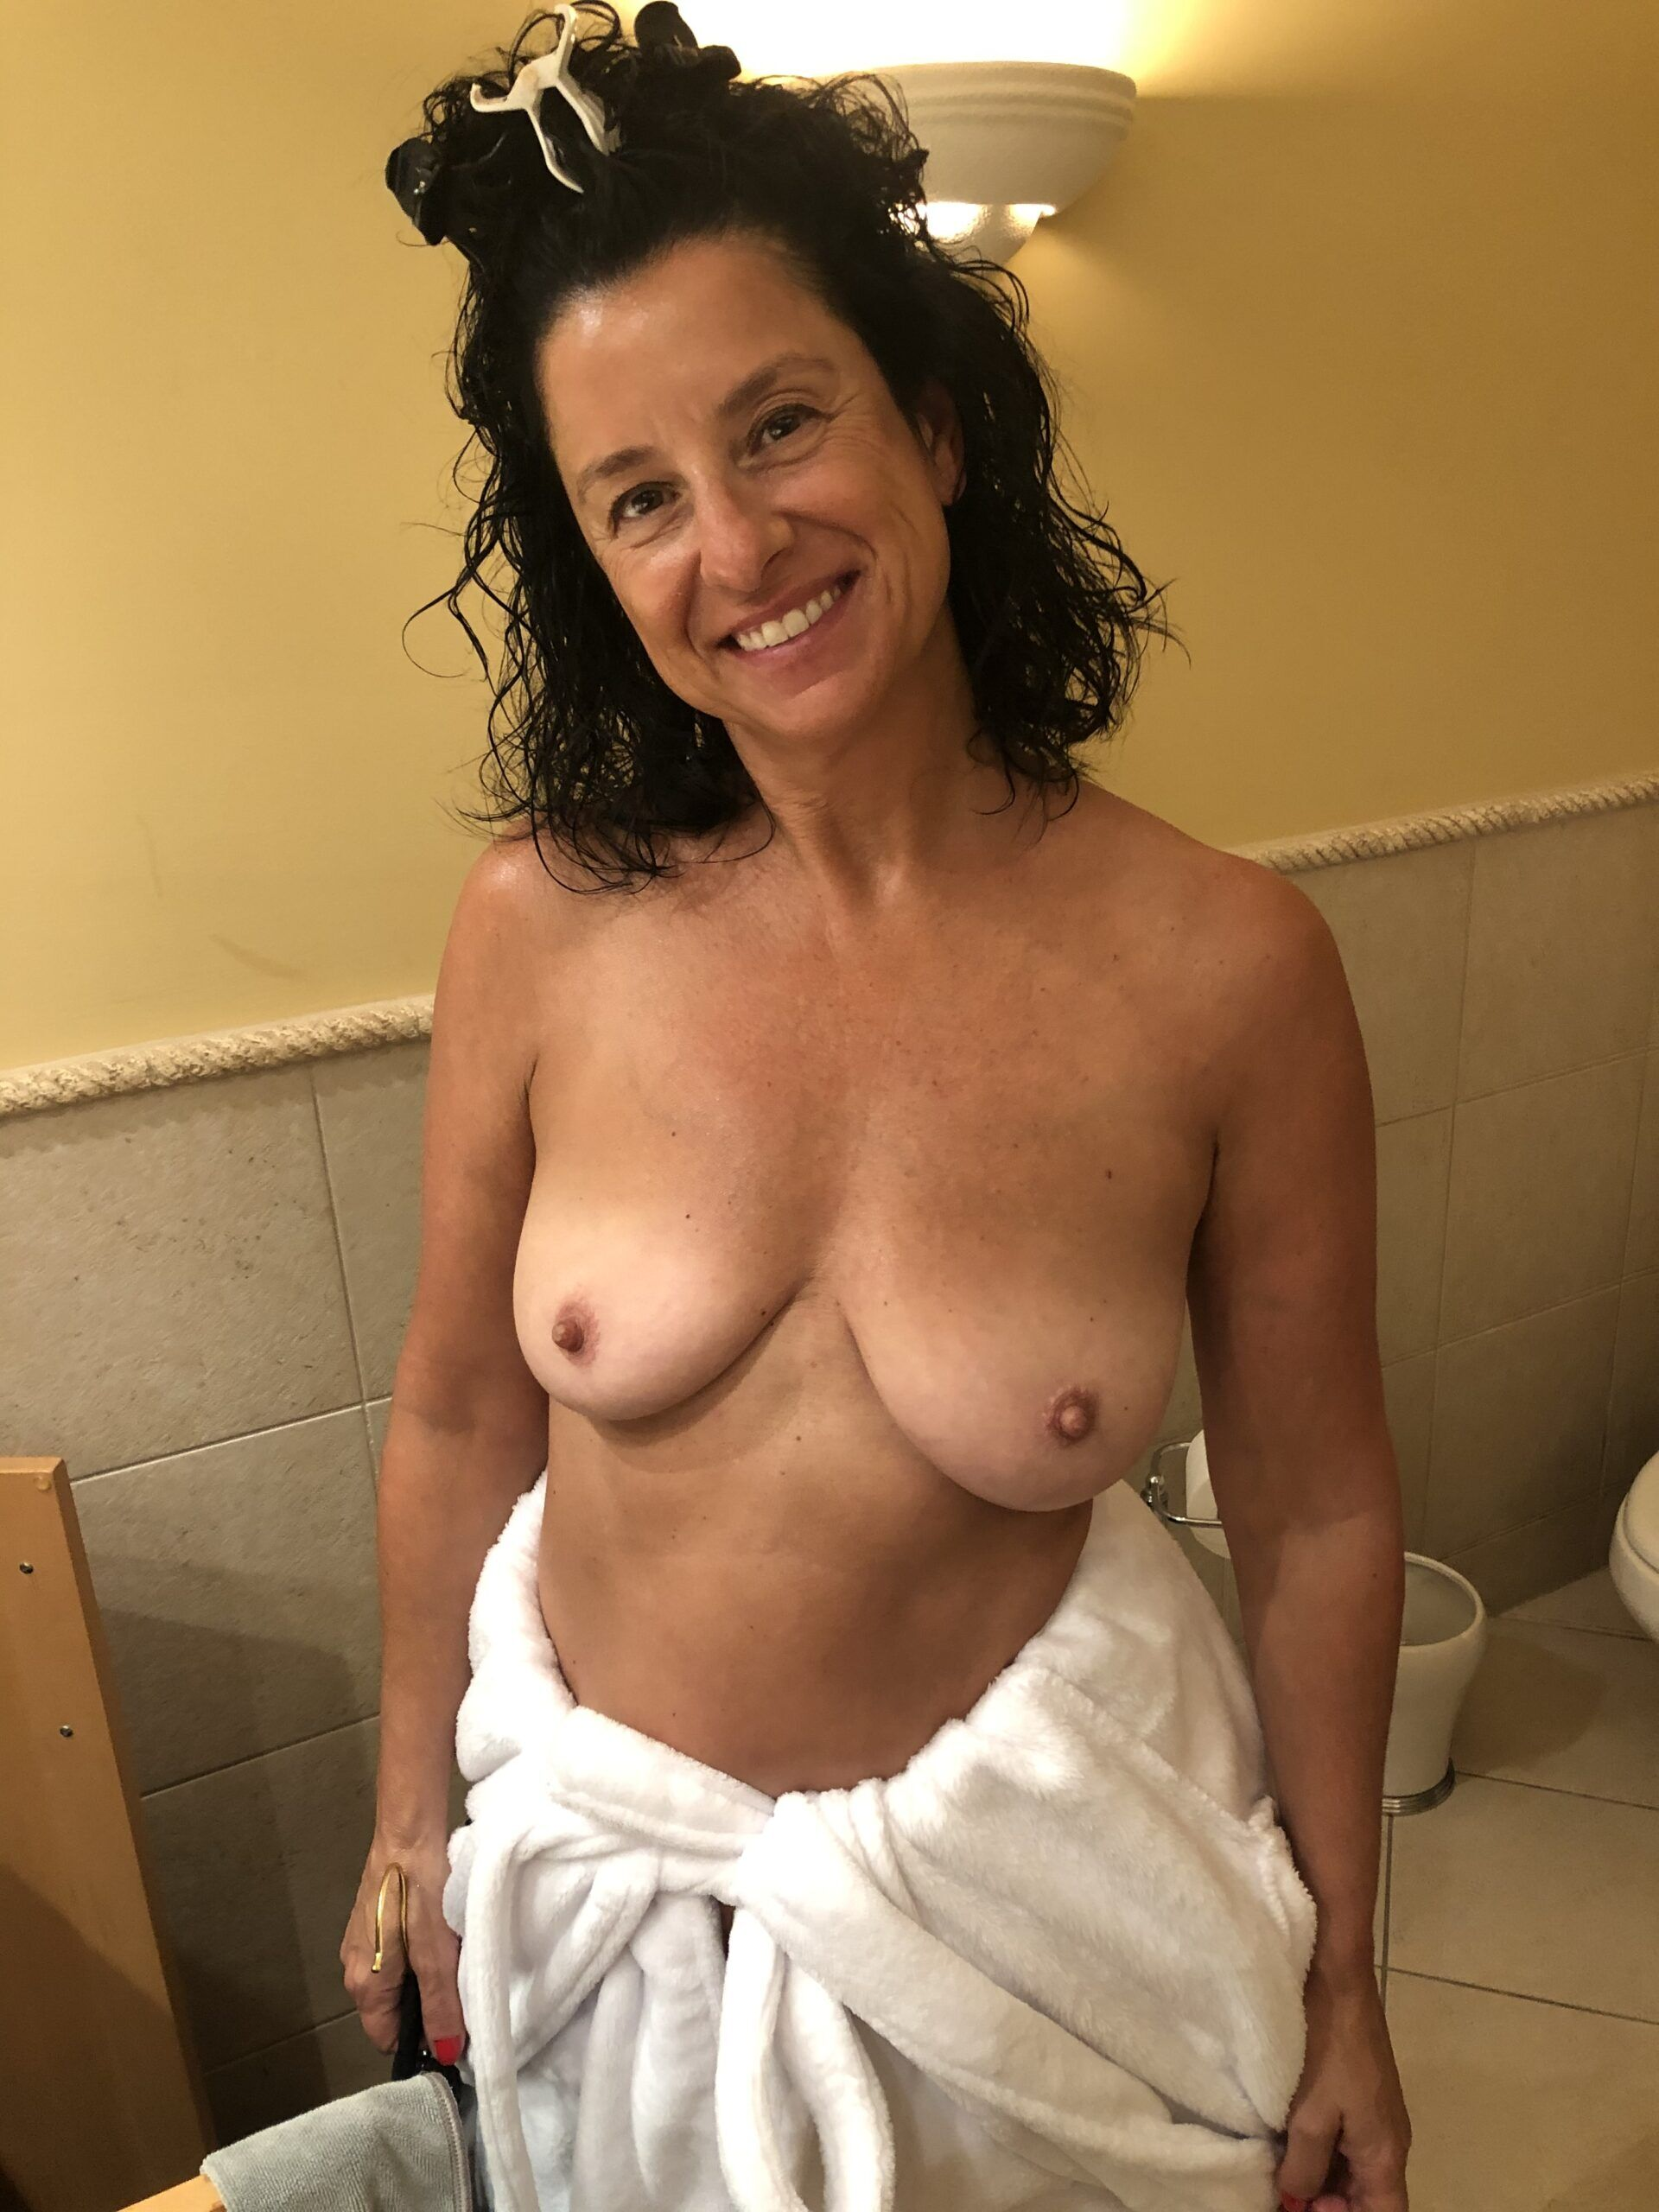 Real Amateurs MILF Flashing Pics Mature Flashing Pics Boobs Flash Pics